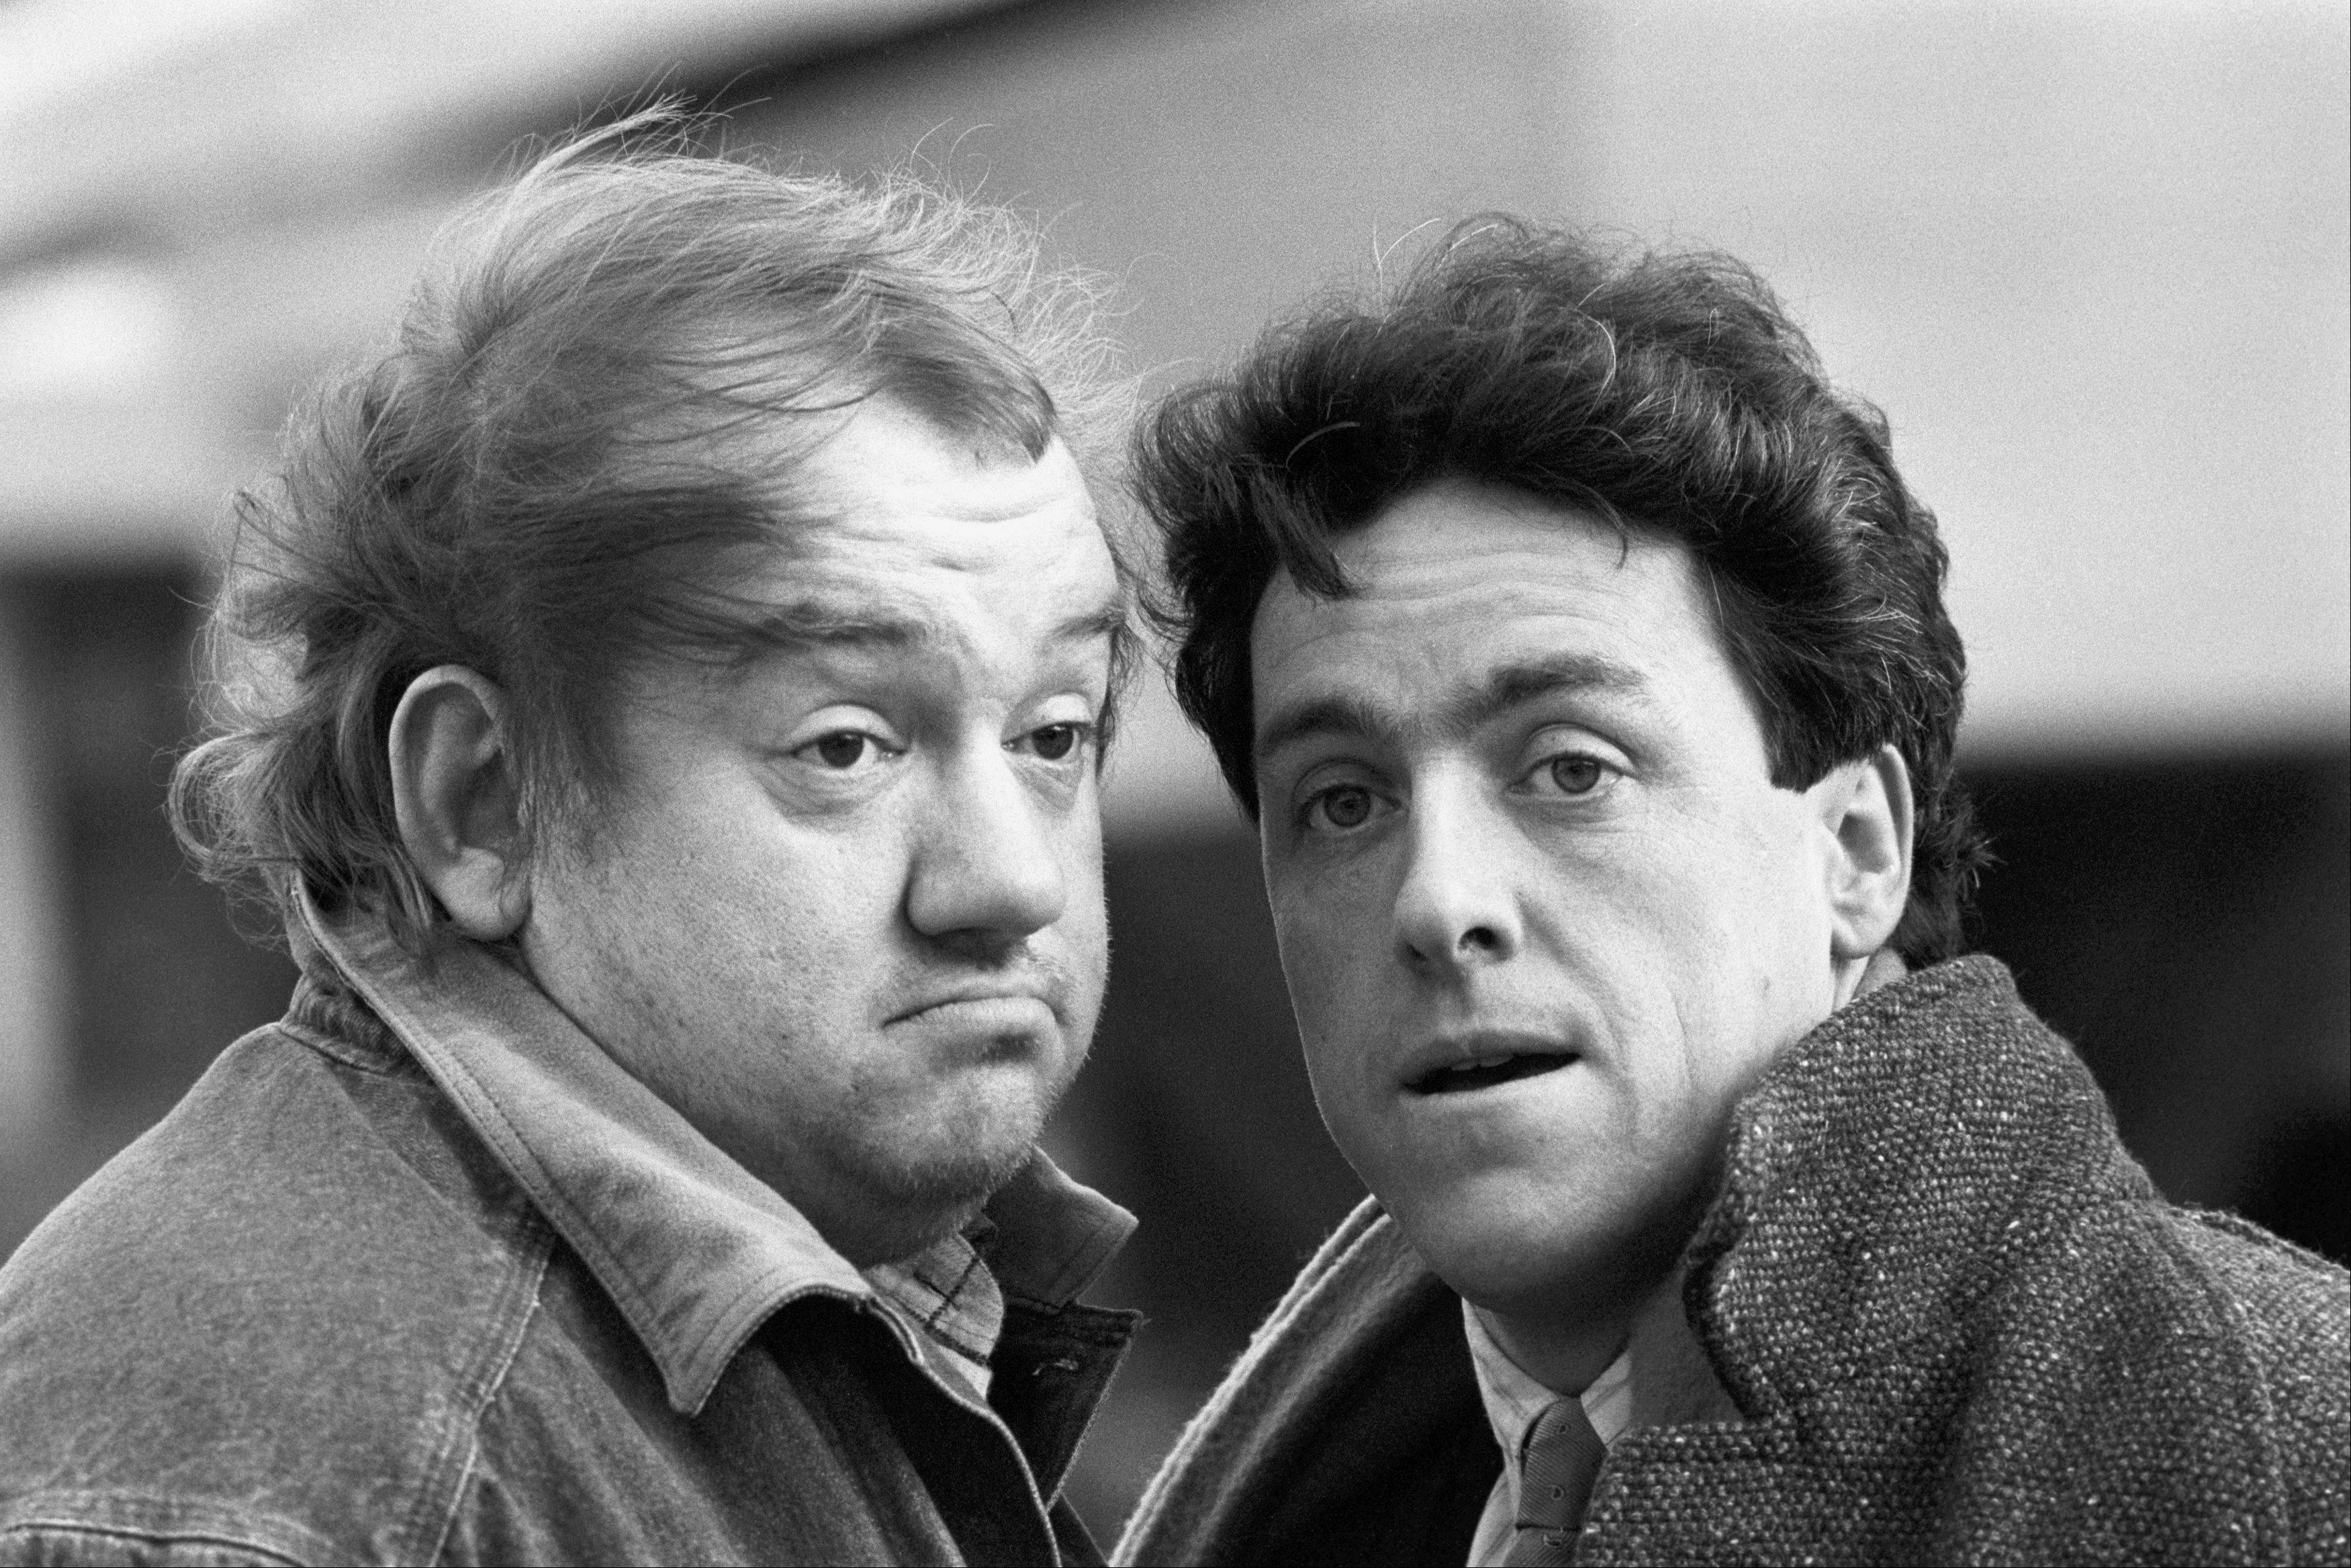 FILE - May 1987 photo of British comedians Mel Smith (left) and Griff Rhys Jones. Smith has died from a heart attack at his home in north west London, his agent Michael Foster has said Saturday July 20, 2013.(AP Photo/ PA) UNITED KINGDOM OUT - NO SALES - NO ARCHIVES